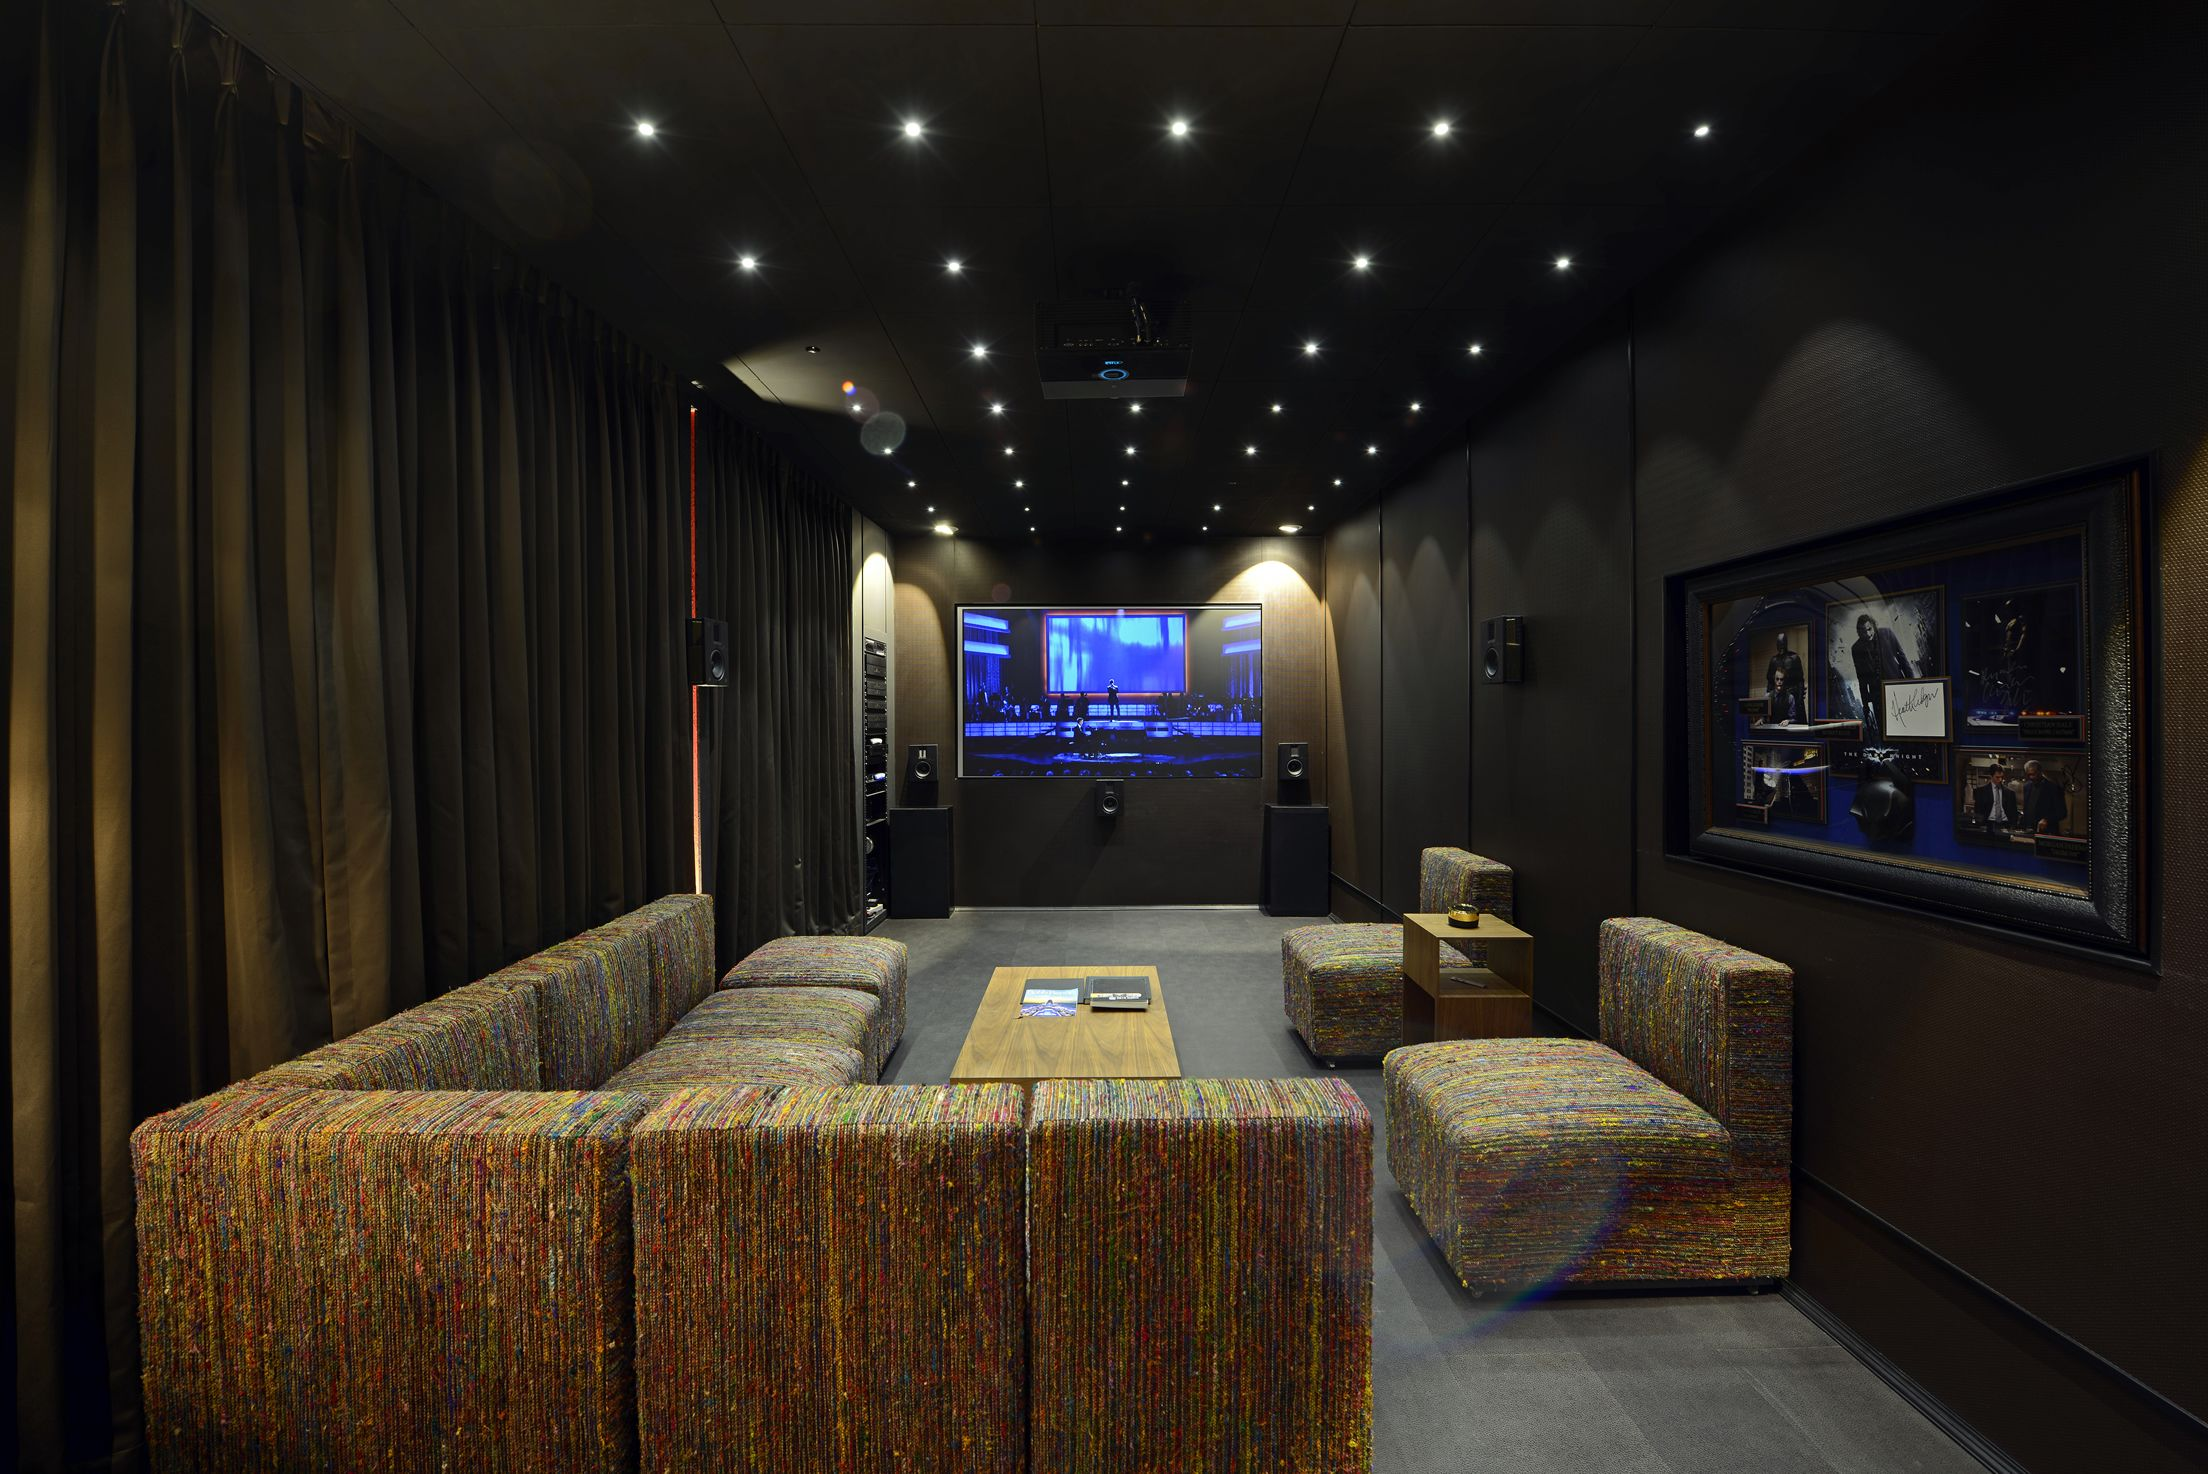 Showroom design contemporary home theater minneapolis by - Trescent Lifestyles Presents The Steinway Lyngdorf S Series Home Theater System Displayed Exclusively At